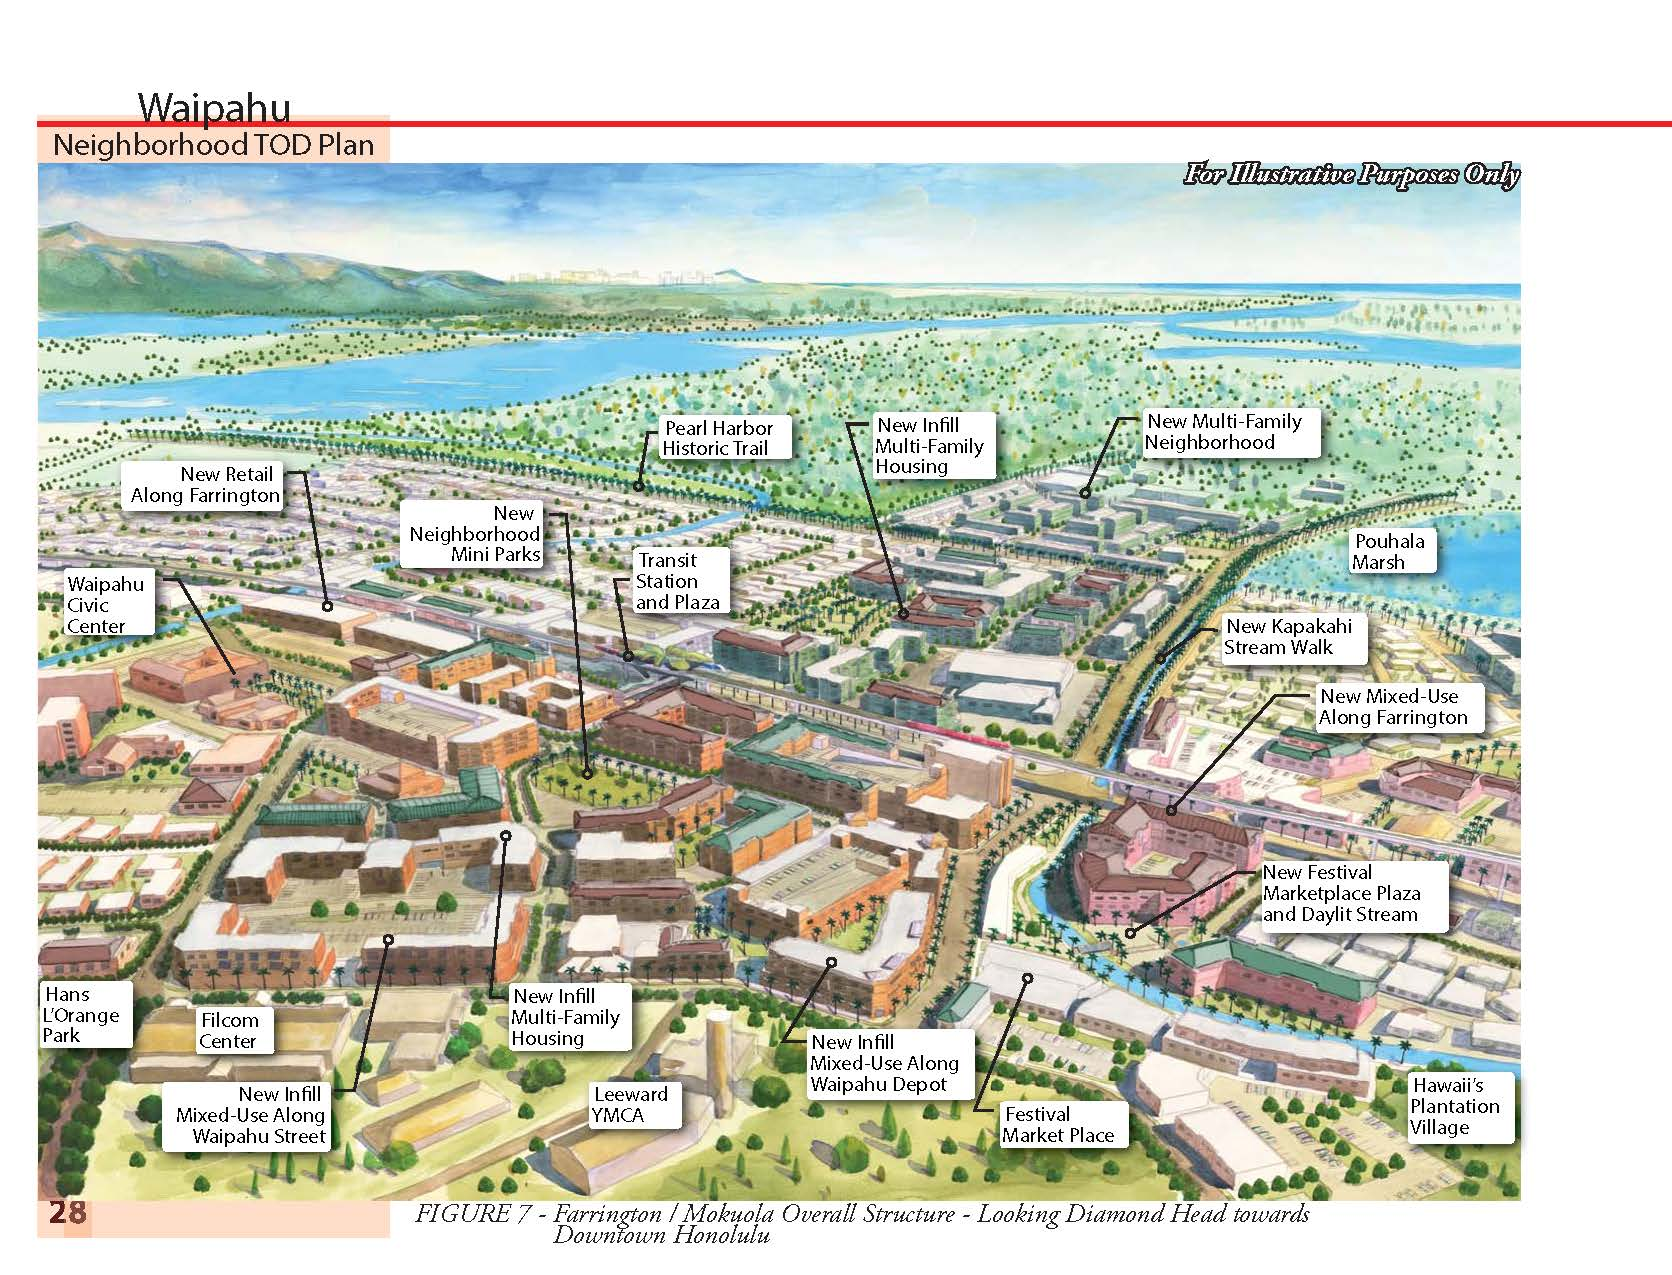 160513_Waipahu Neighborhood TOD Plan_Page_034.jpg